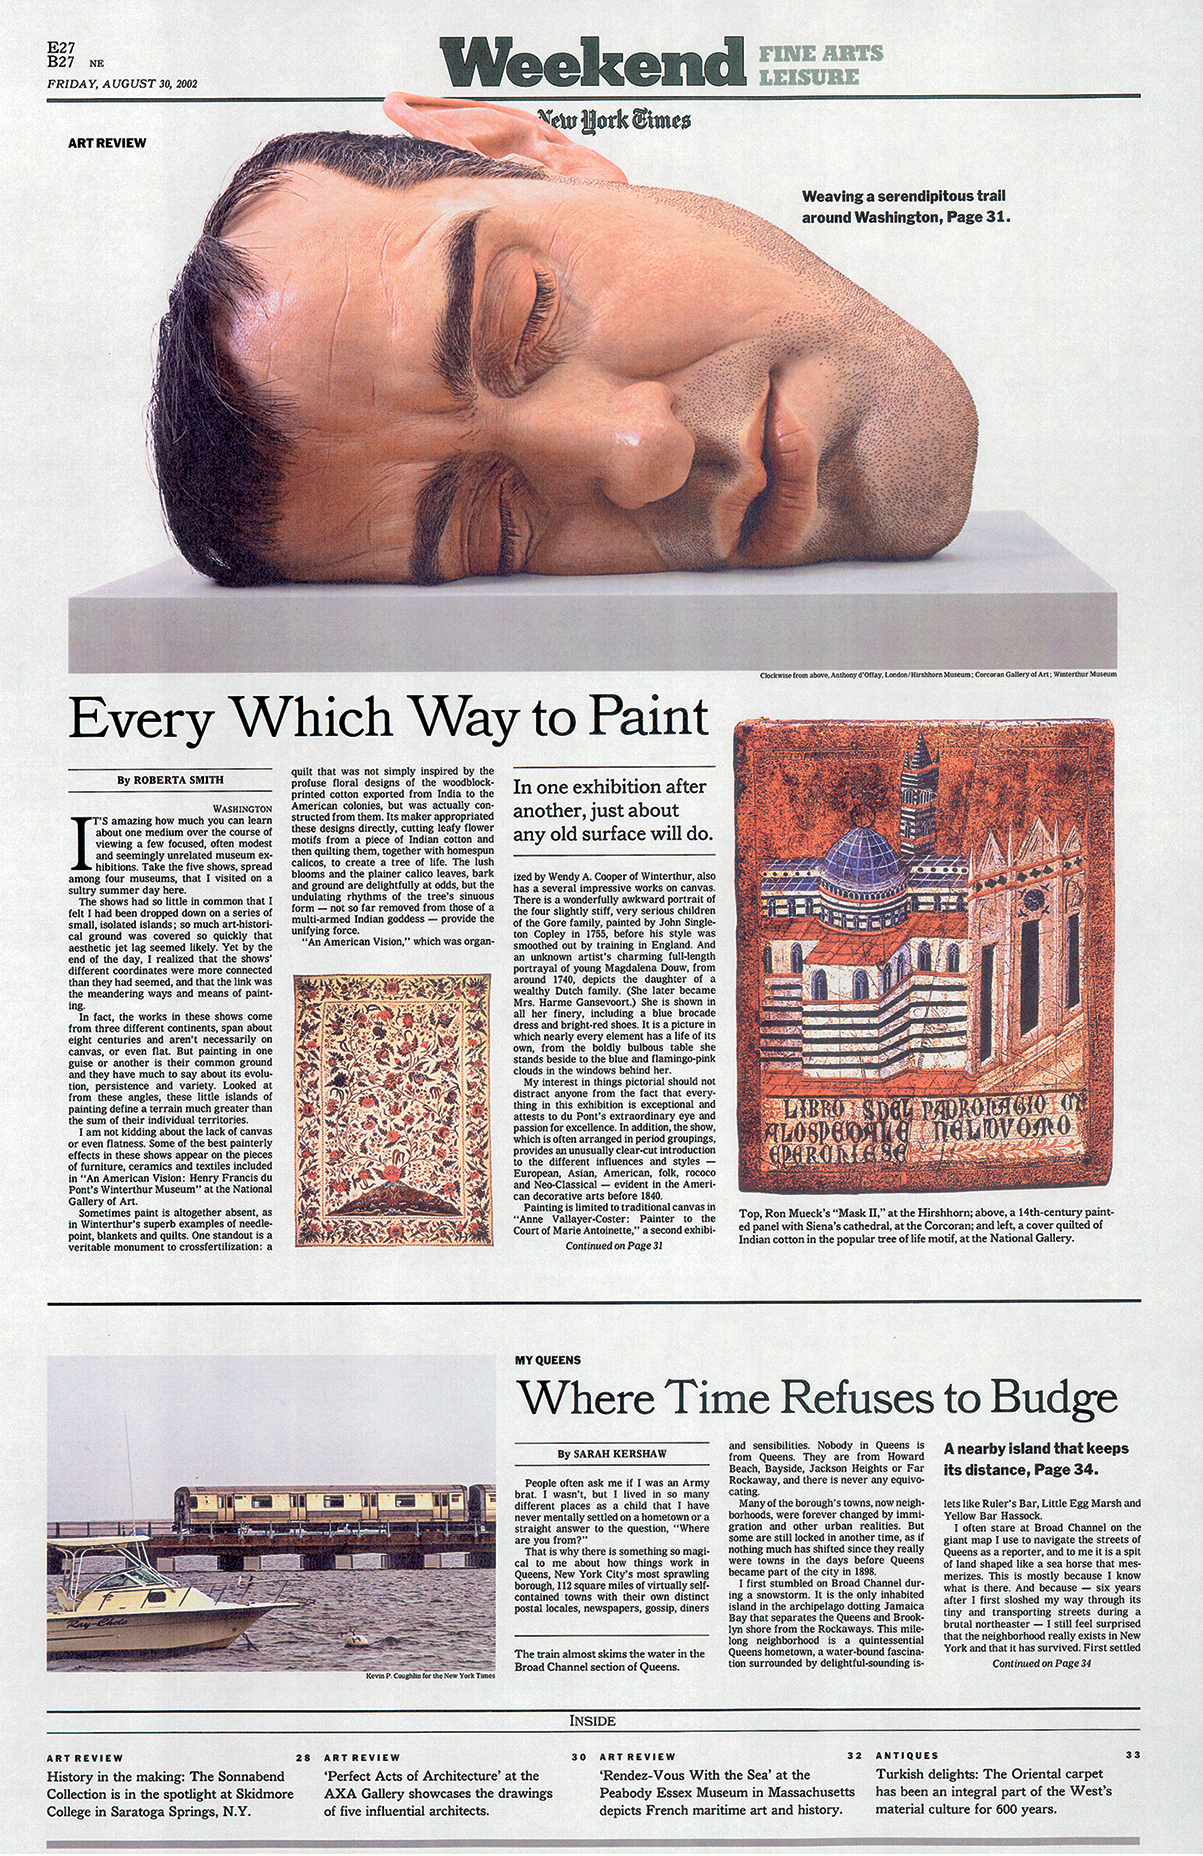 The New York Times weekend section.  James Reyman has been a guest Art Director for the Weekend section of The New York Times.